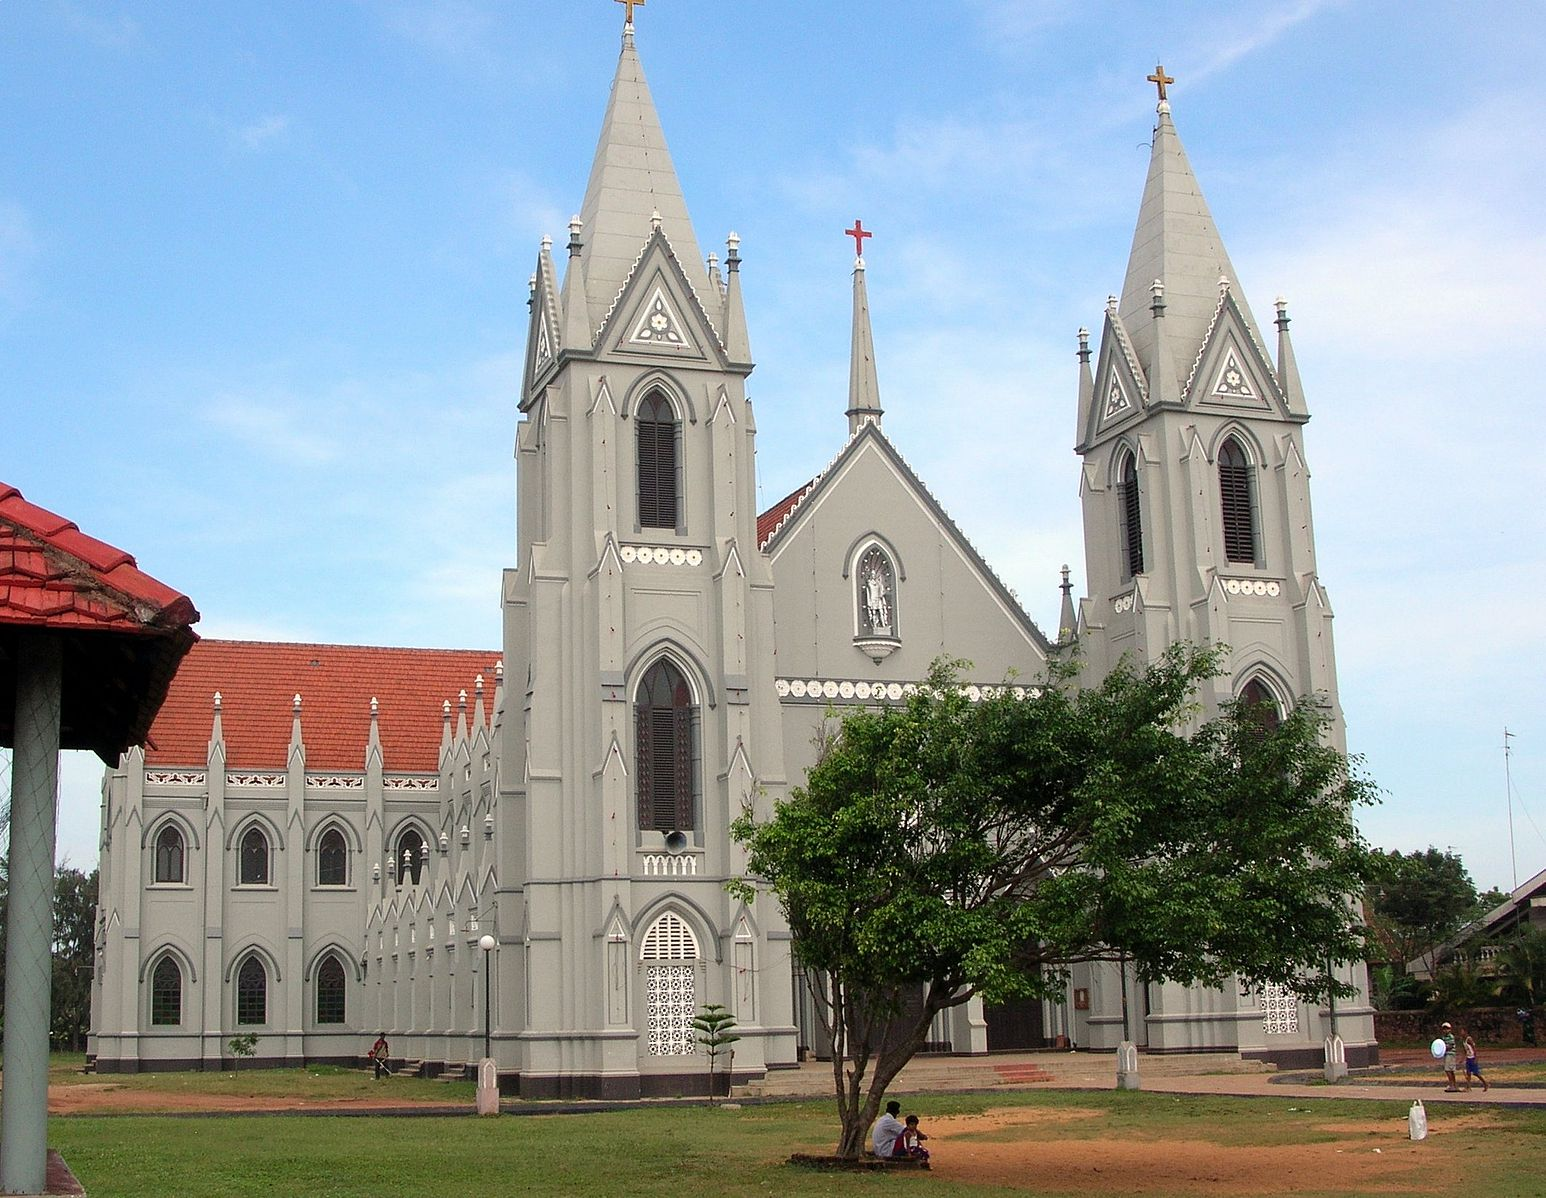 St. Sebastian's Church in Negombo, Sri Lanka was one of those attacked on Easter Sunday 2019.